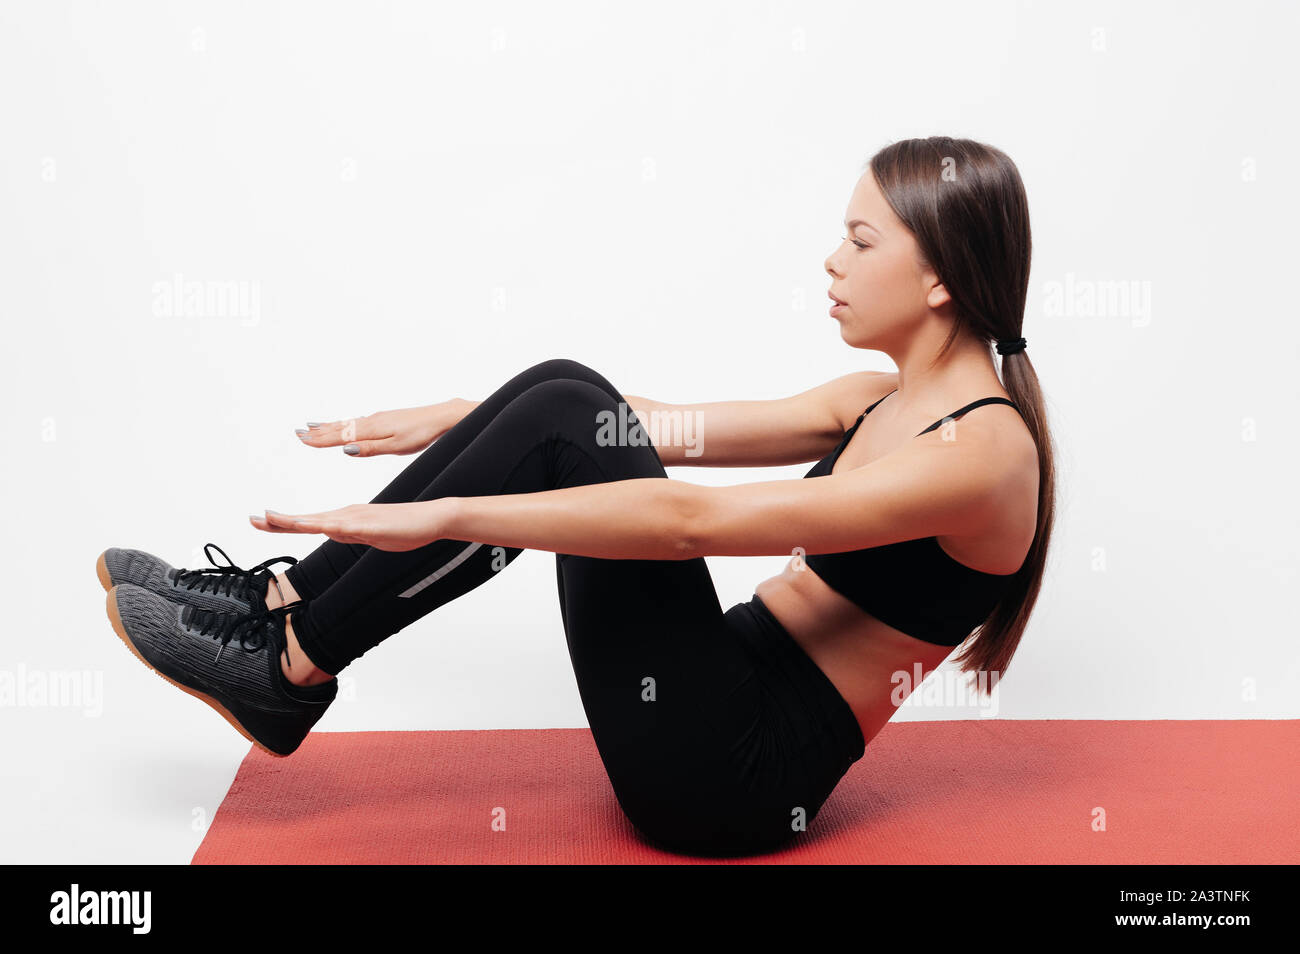 Side view of focused young lady in black sportswear performing sit up exercise for abs on red mat during fitness training against white background Stock Photo